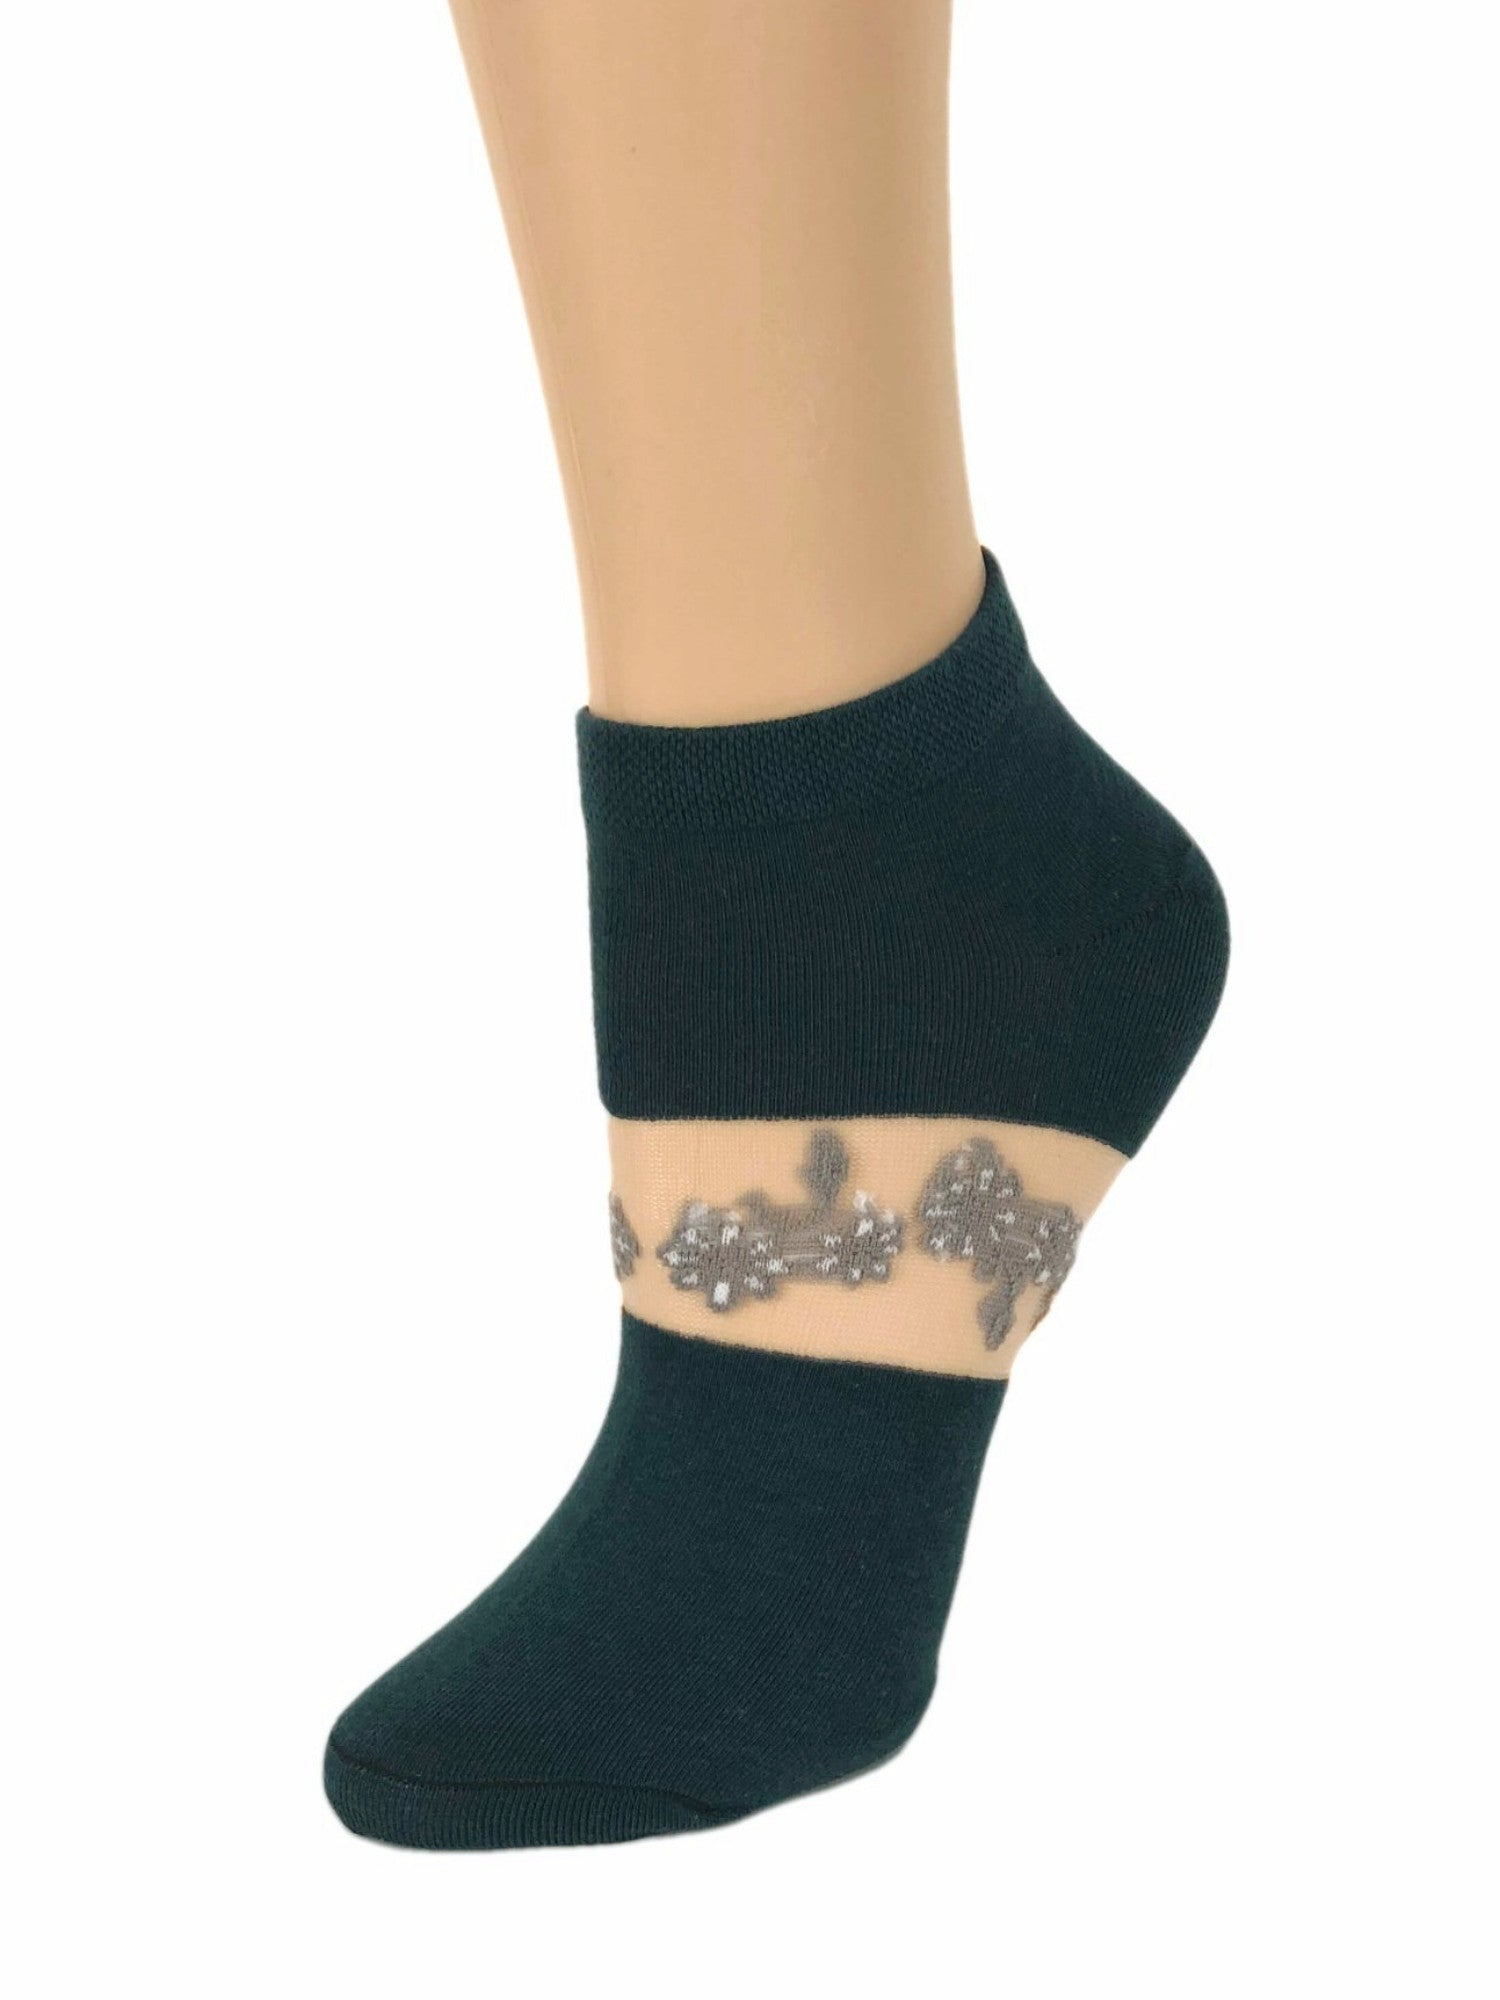 One-Stripped Grey Flower Ankle Sheer Socks-Global Trendz Fashion®